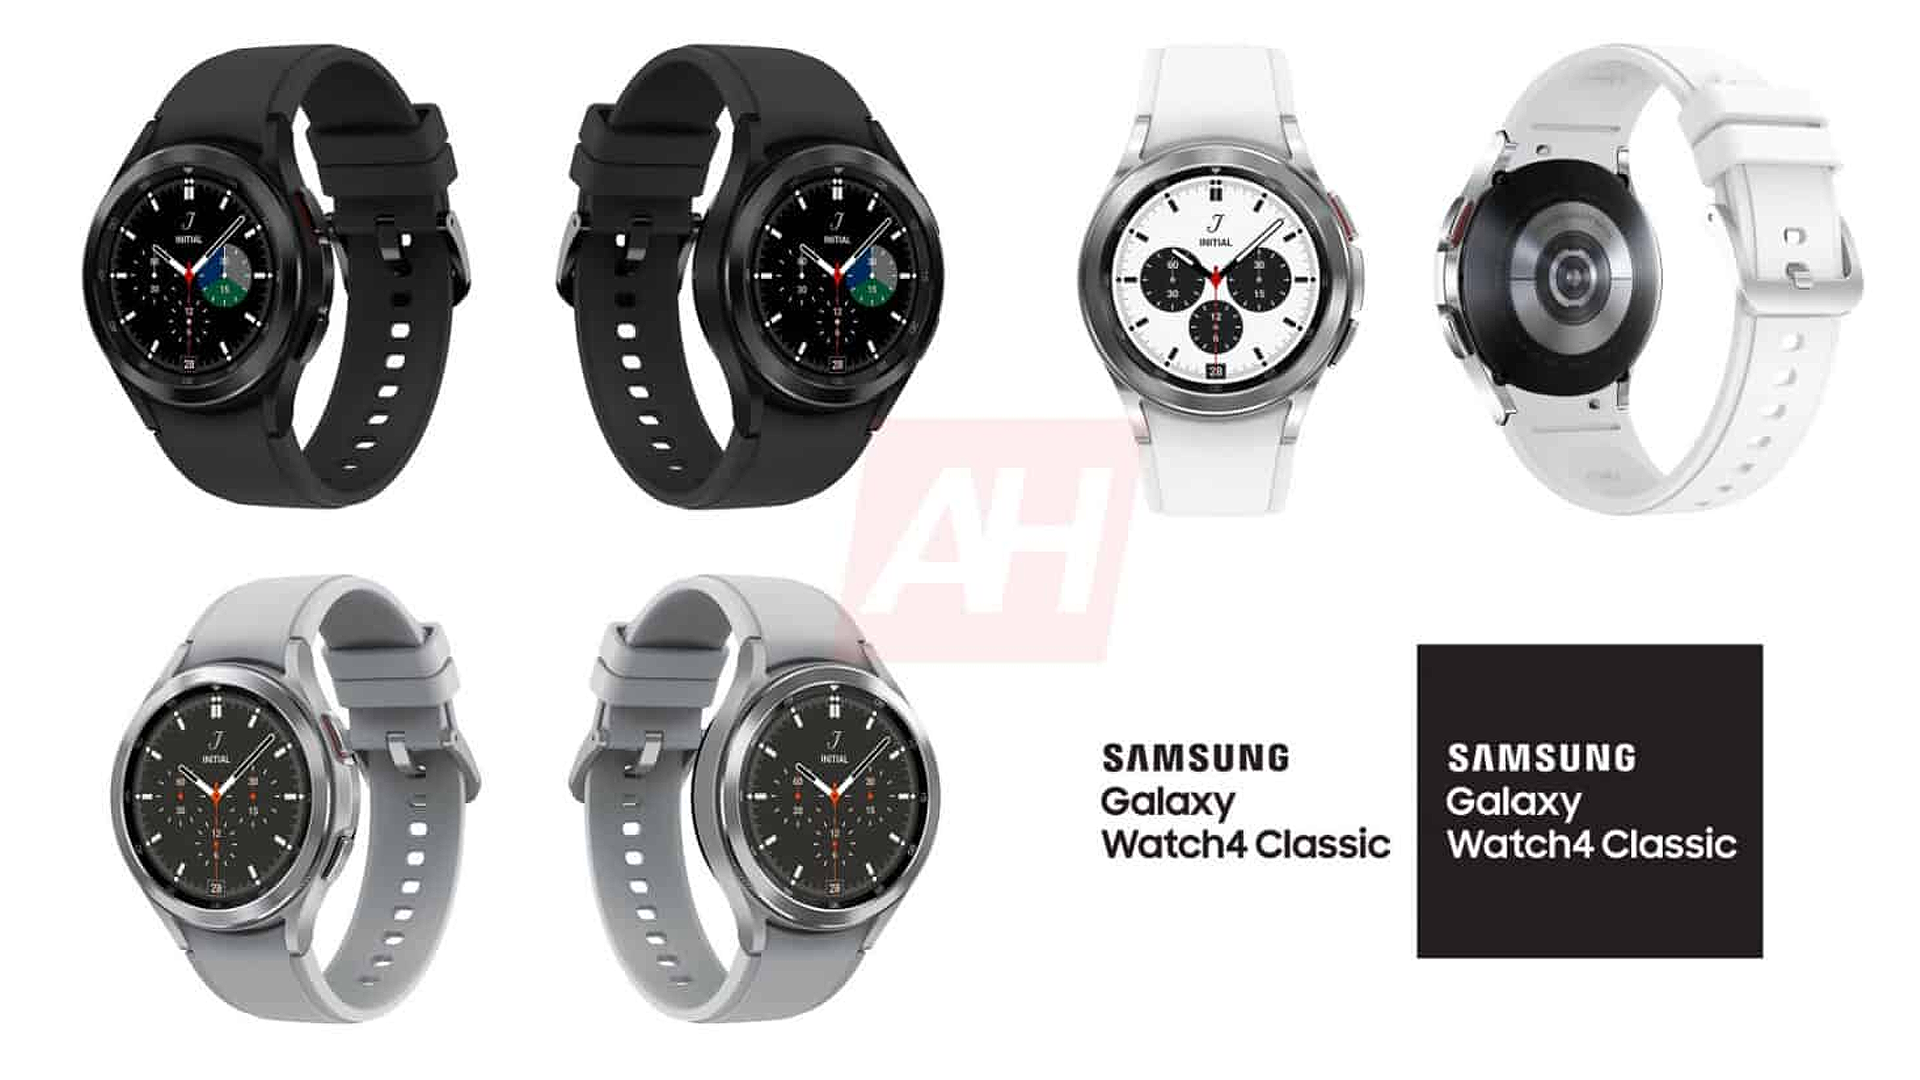 Leaked Galaxy Watch 4 renders in black, white, and silver.